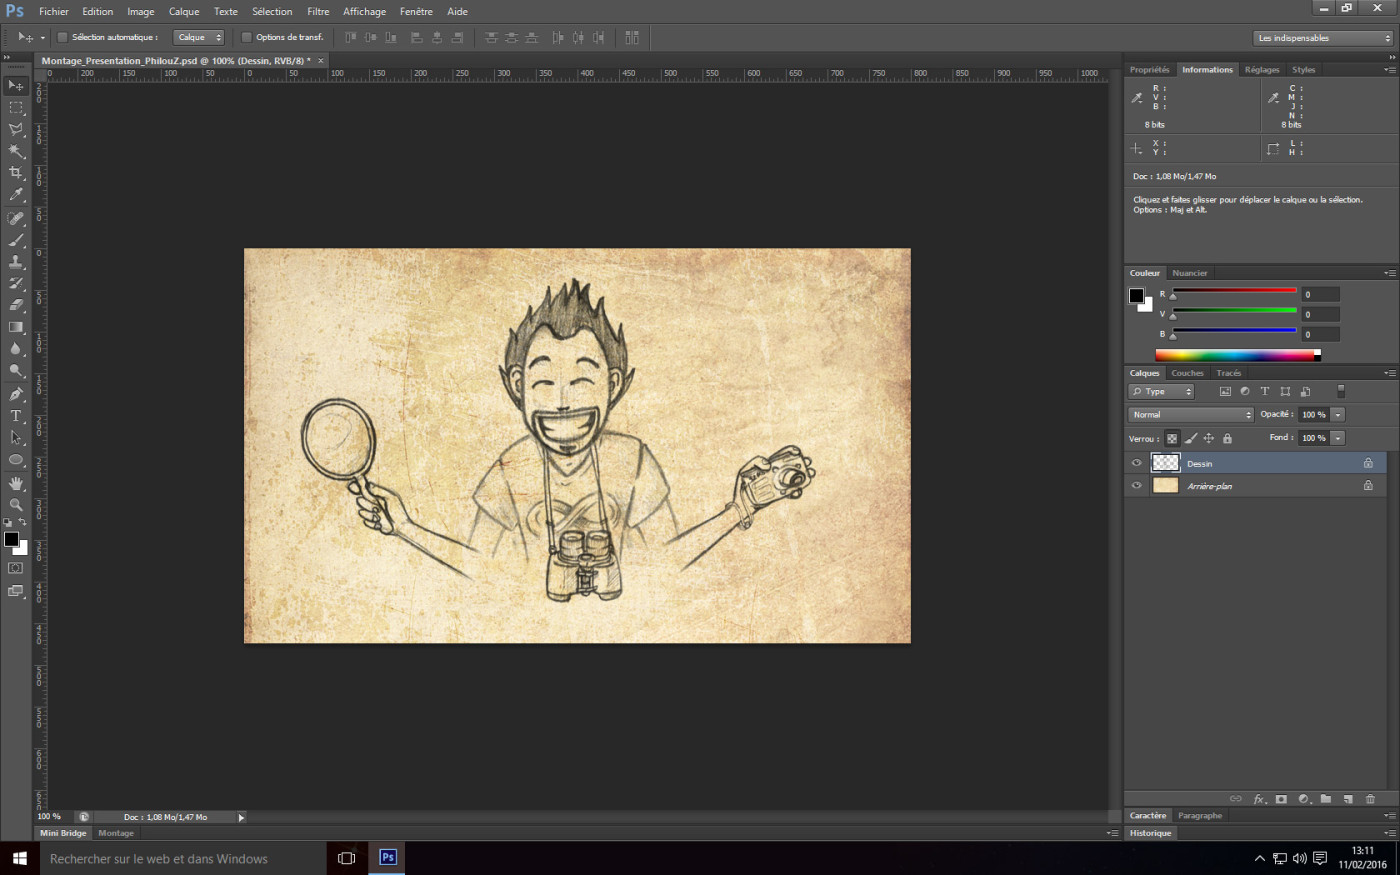 Tutoriel Photoshop - Dessin transparent finalisé